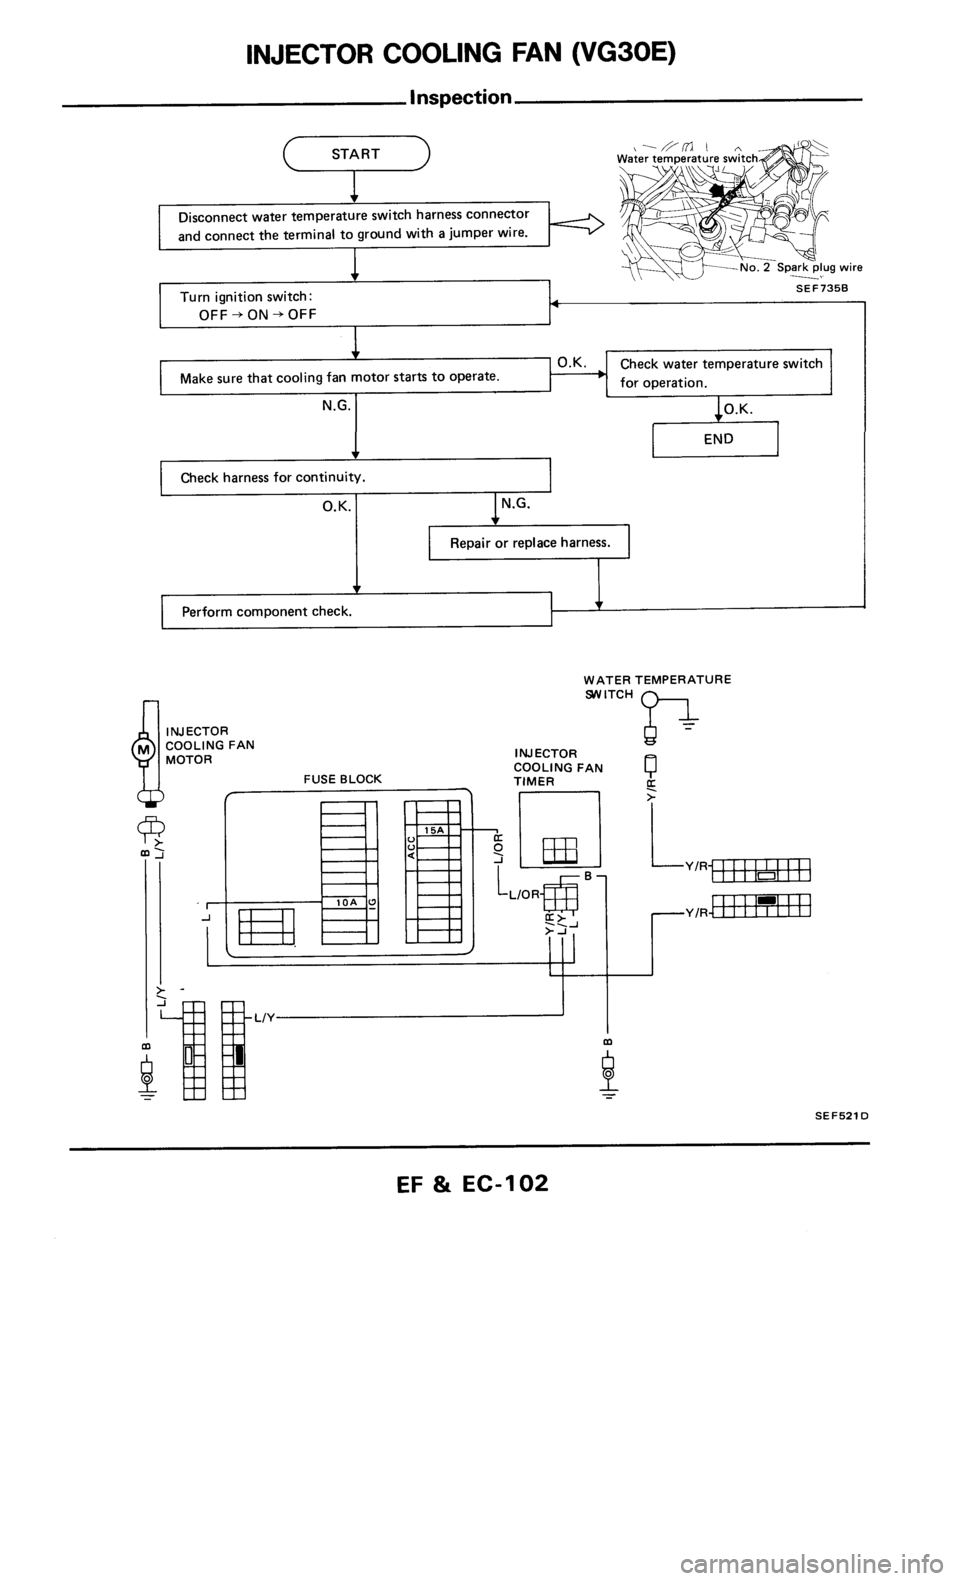 Nissan 300zx 1986 Z31 Engine Fuel And Emission Control System Wiring Harness Workshop Manual